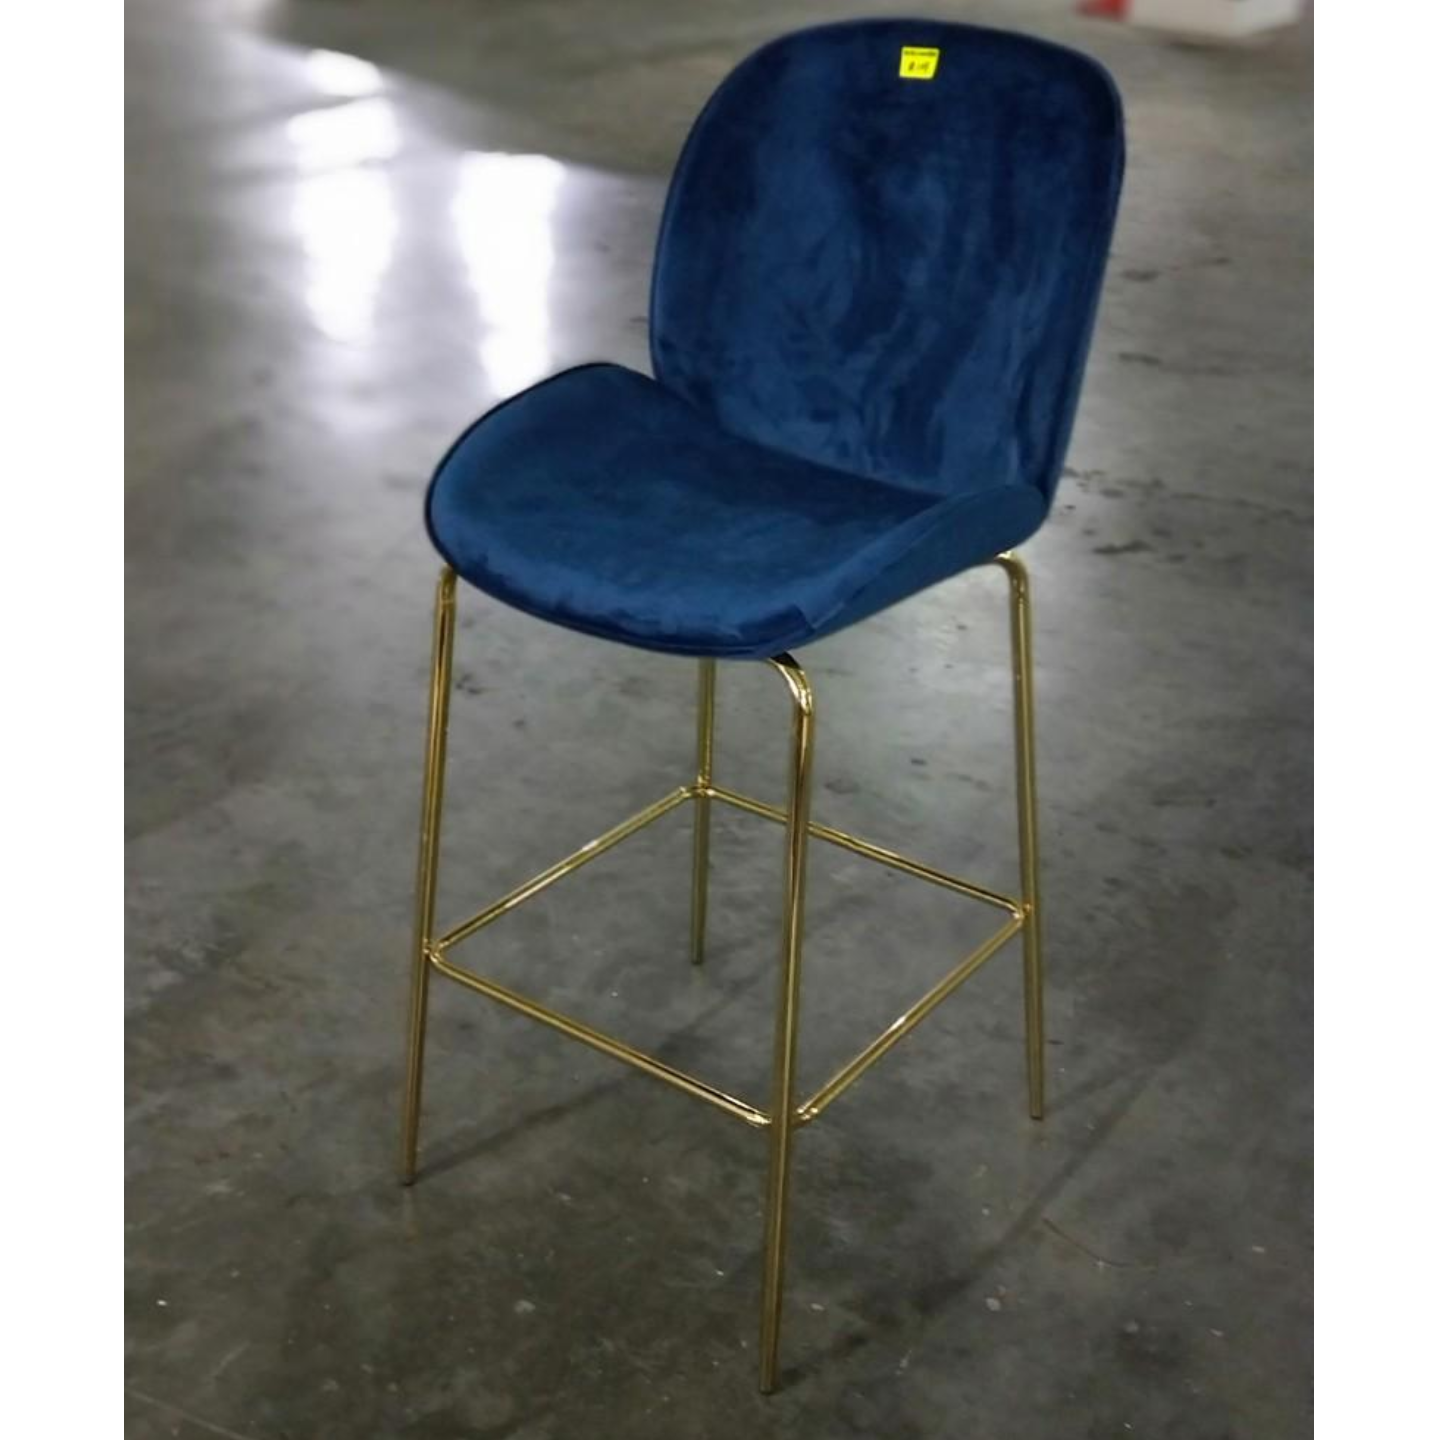 VOLKZ Bar Stool with GOLD FRAME in NITROUS BLUE